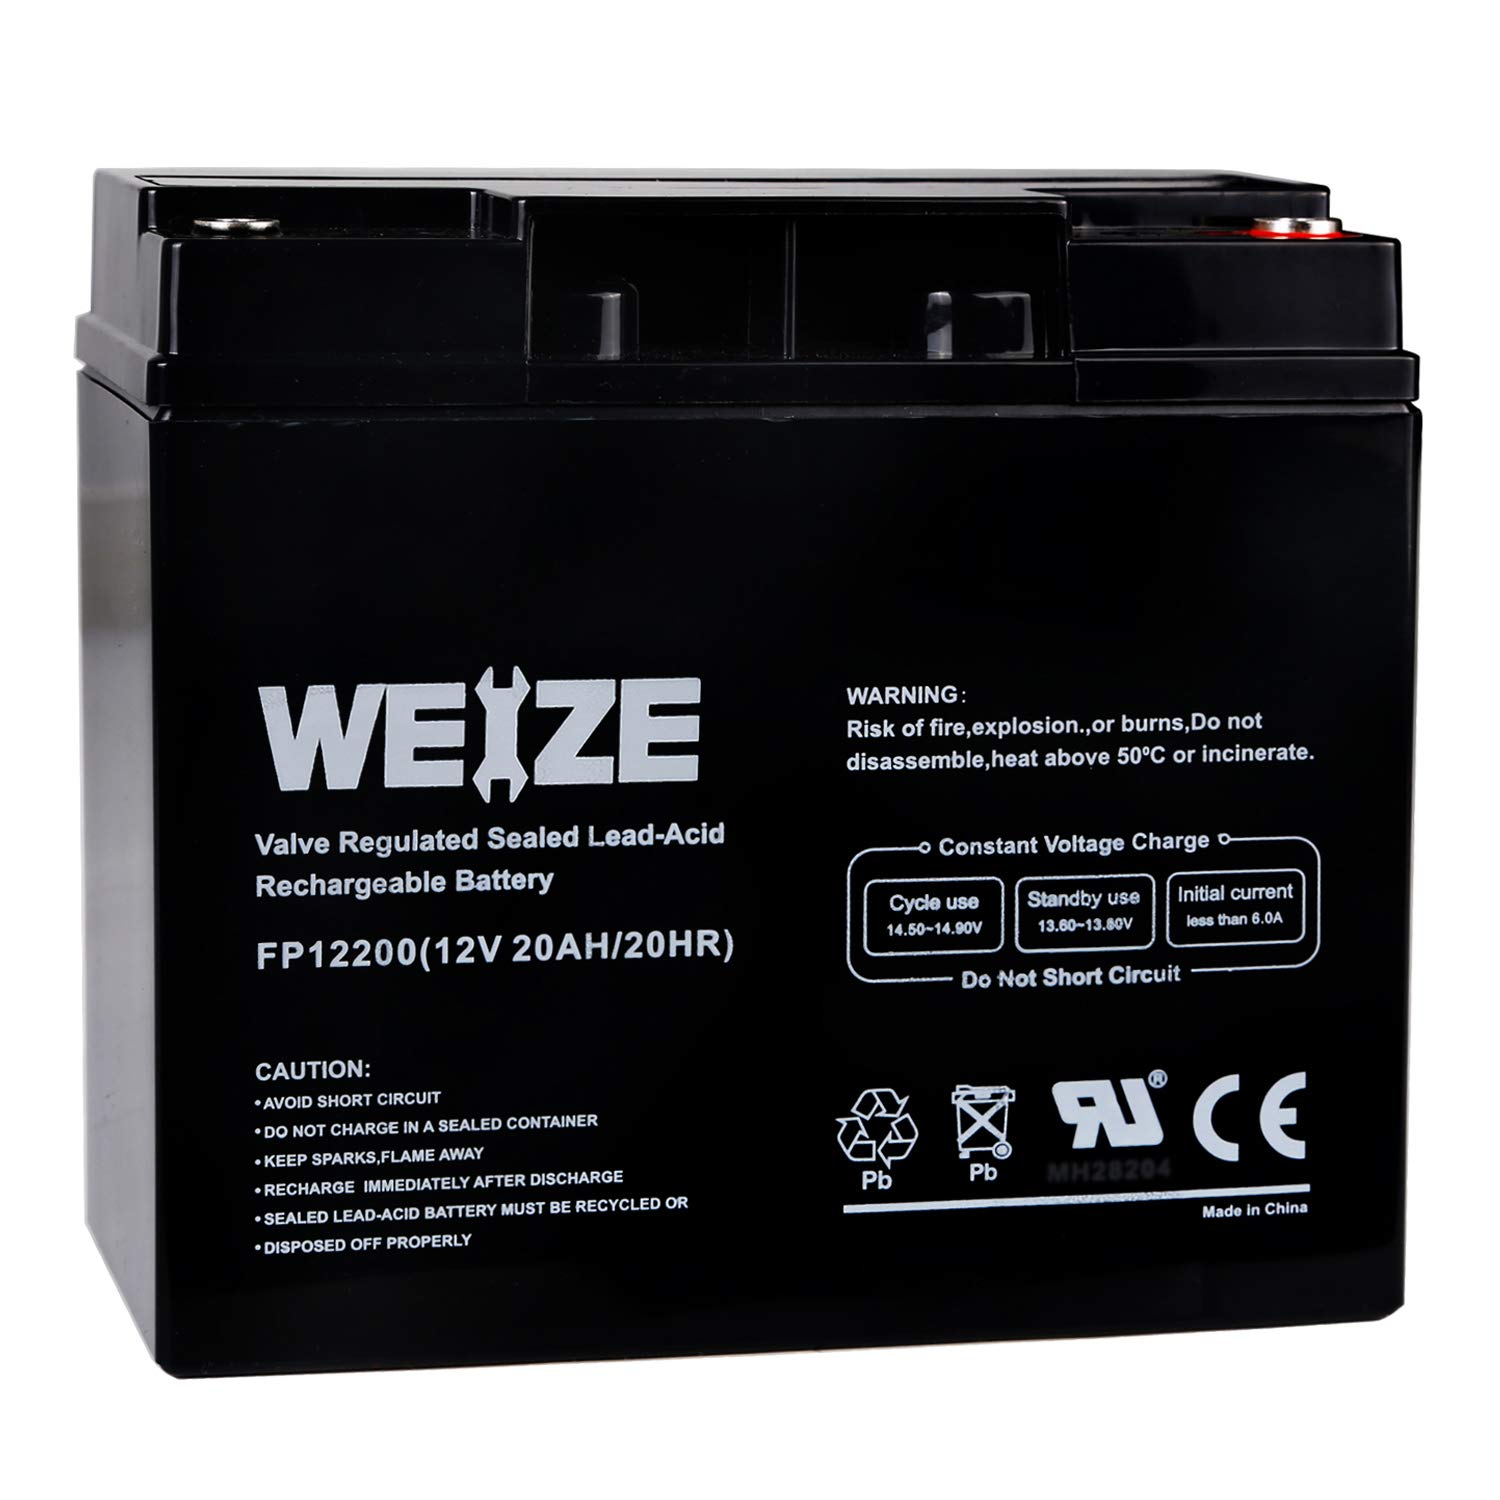 Weize 12V 20AH Lead Acid Battery Replace UB12200 FM12200 6fm20 EXP12200 12V 20AH 22AH Batteries by WEIZE